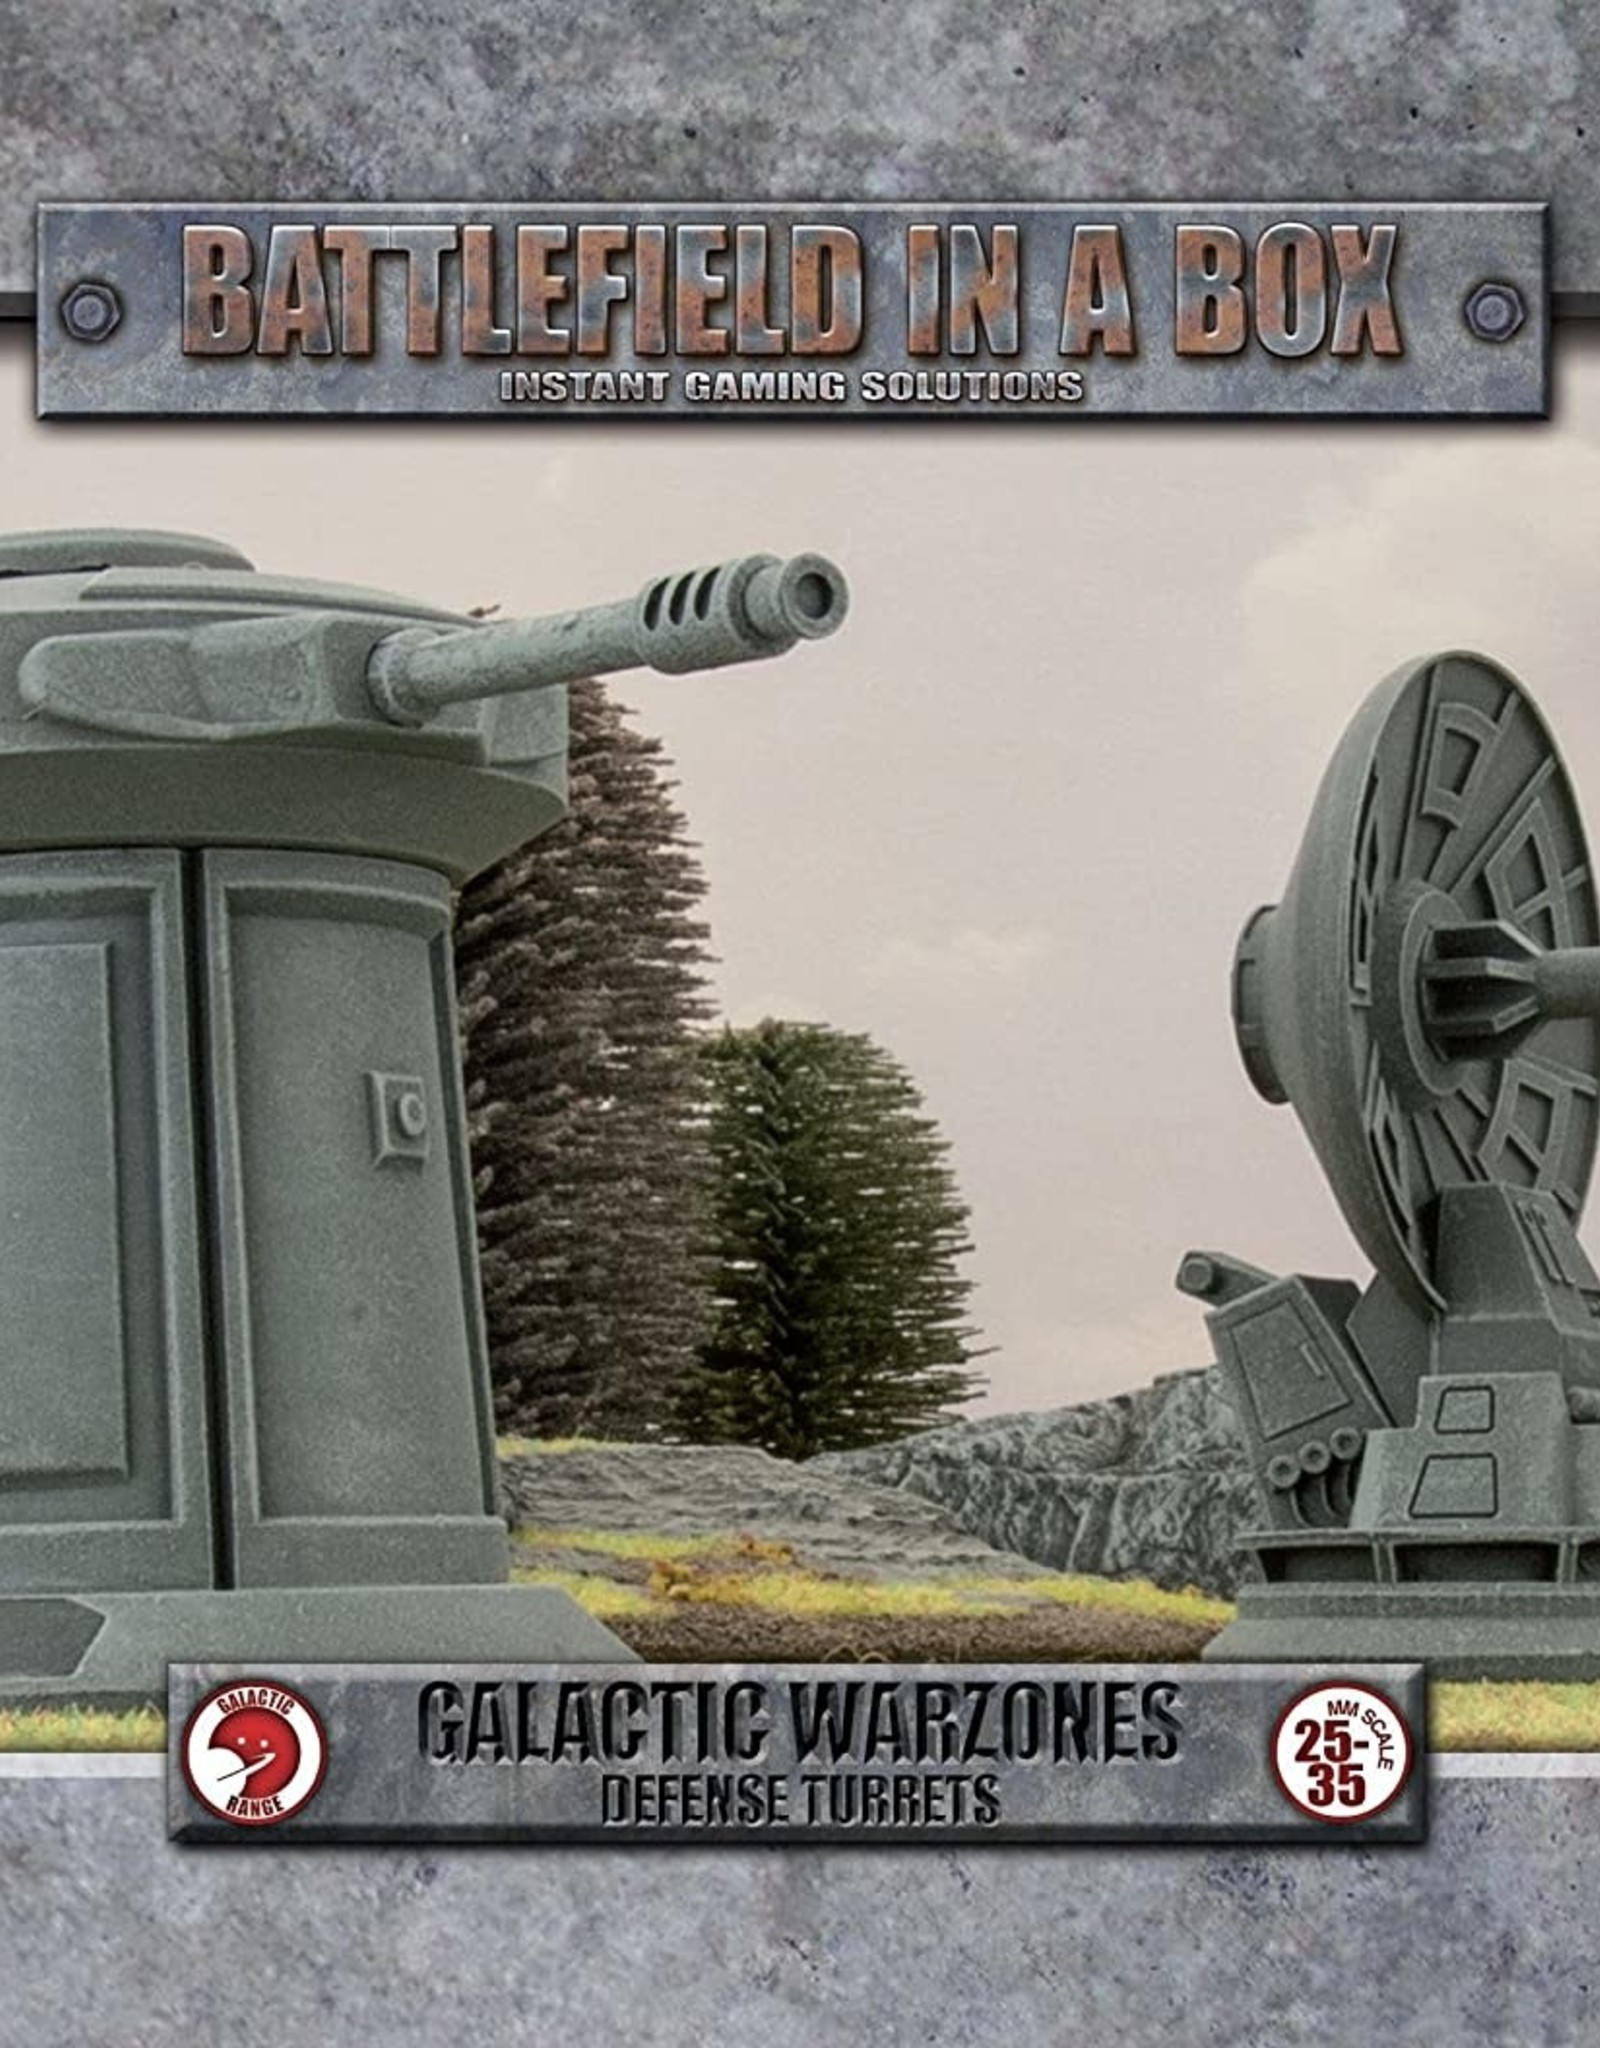 Gale Force 9 Battlefields in a Box Galactic Warzones Defense Turrets